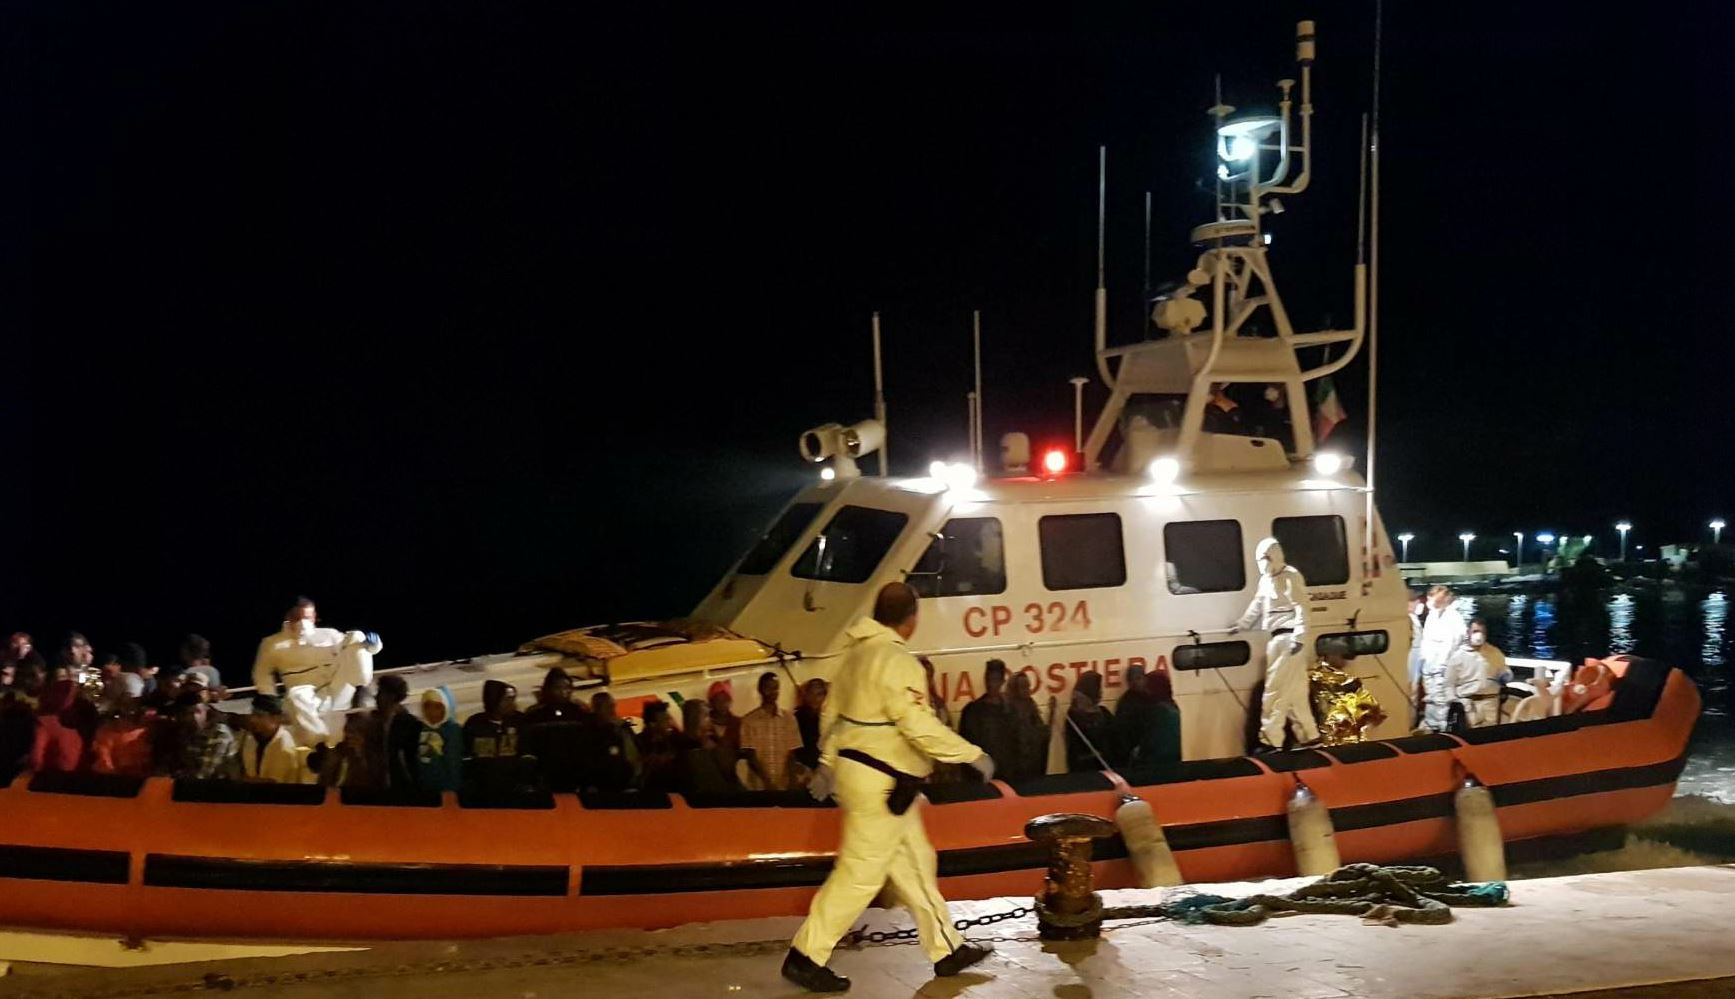 Salvati dalla Guardia costiera italiana 70 migranti al largo di Lampedusa